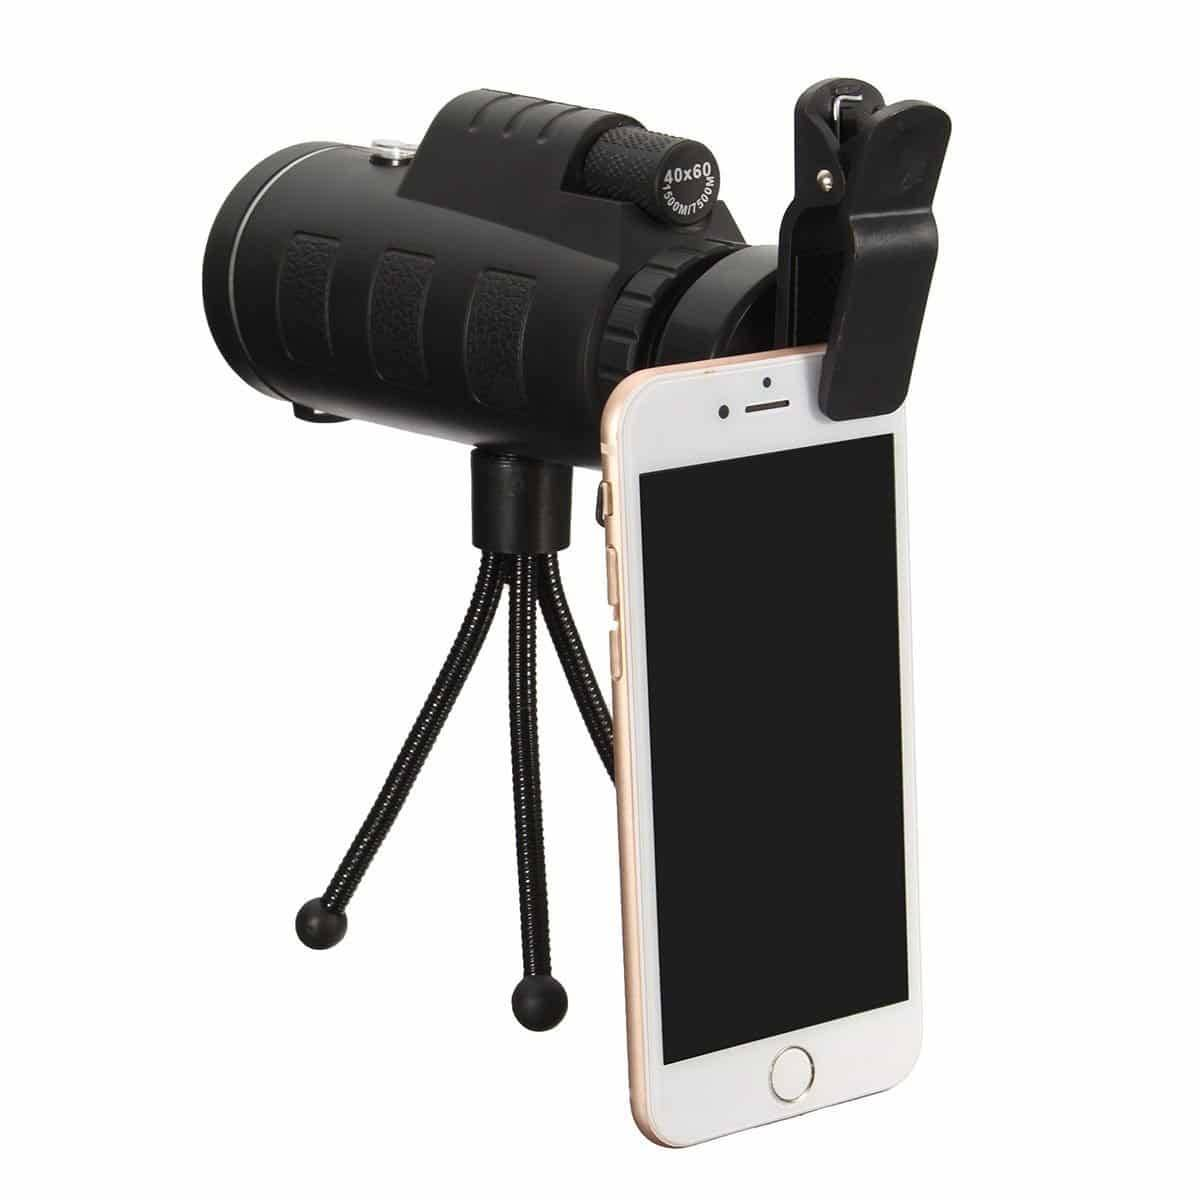 HD Telescope Lens with Tripod Mobile Phone Lenses Mobile Phones & Accessories